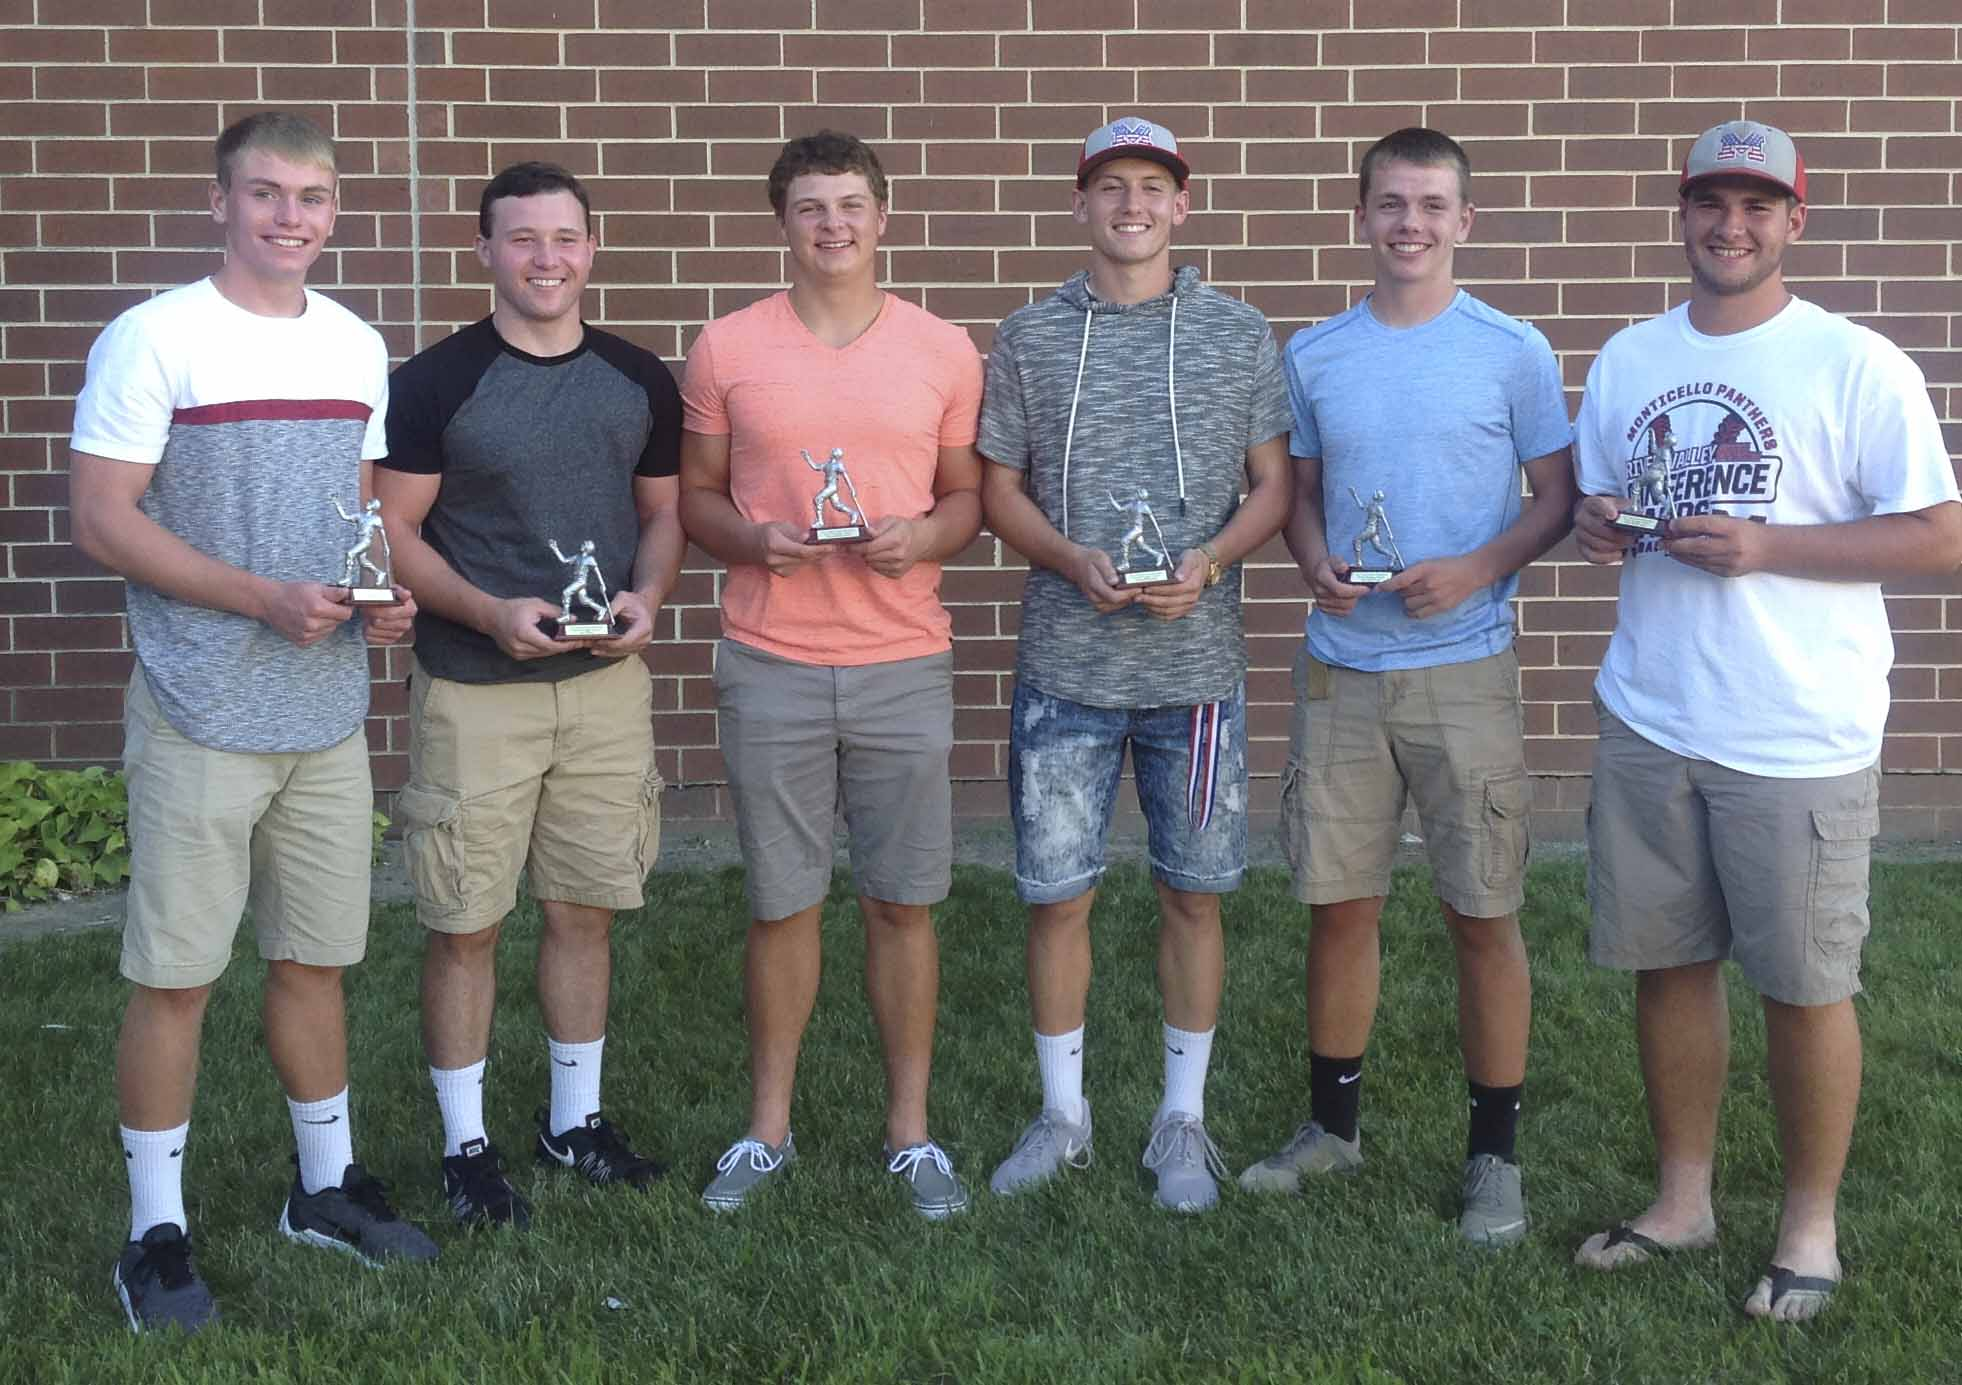 Silver Slugger Award winners, from left: Gavin Cooper, Jon Mootz, Jacob Manternach, Andrew Mescher, Kyle Sperfslage and Ryan Manternach. Jacob Manternach also earned the award for Highest Quality At Bat Percentage.